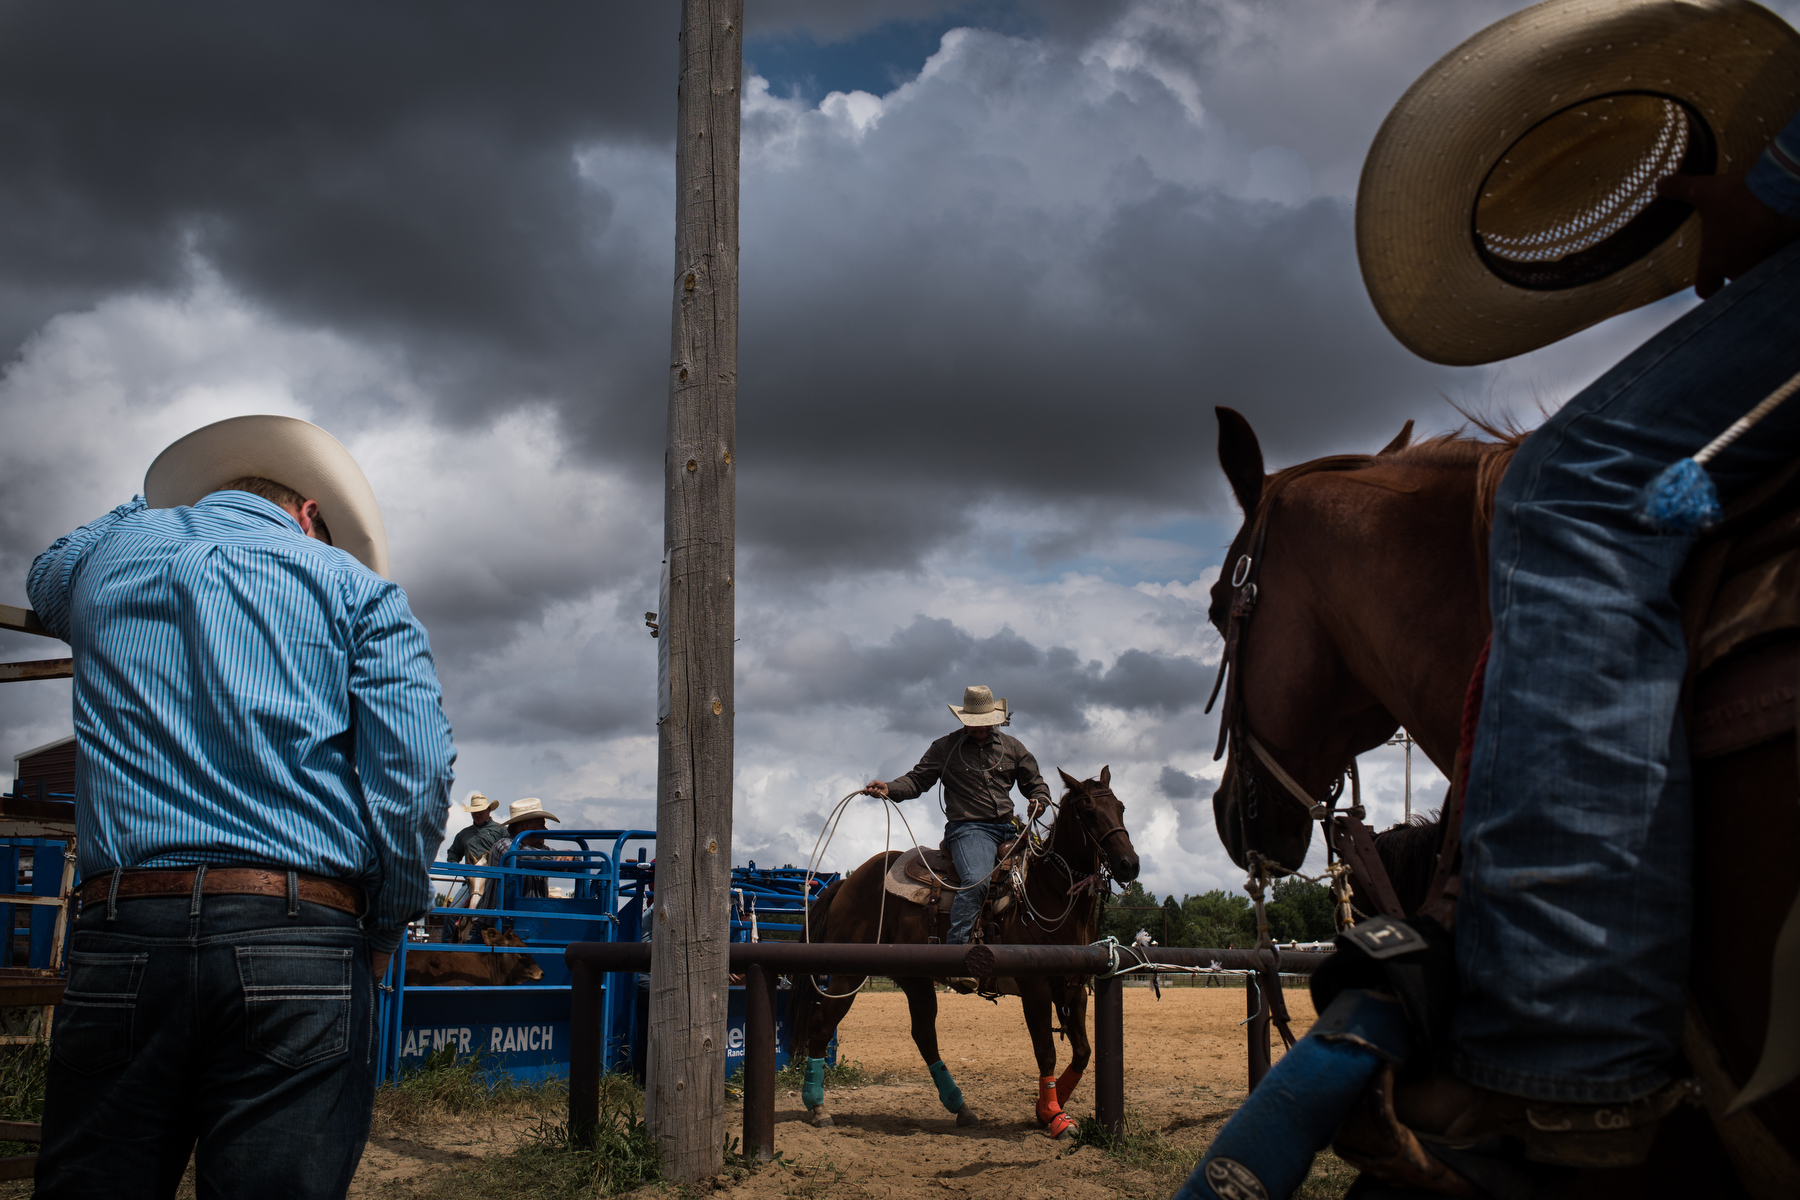 "45º31'30.0""N, 102º28'11.9""W. 111 miles from the nearest McDonald's.  Competitors get ready for the start of tie-down roping competition at a rodeo in Bison, SD."